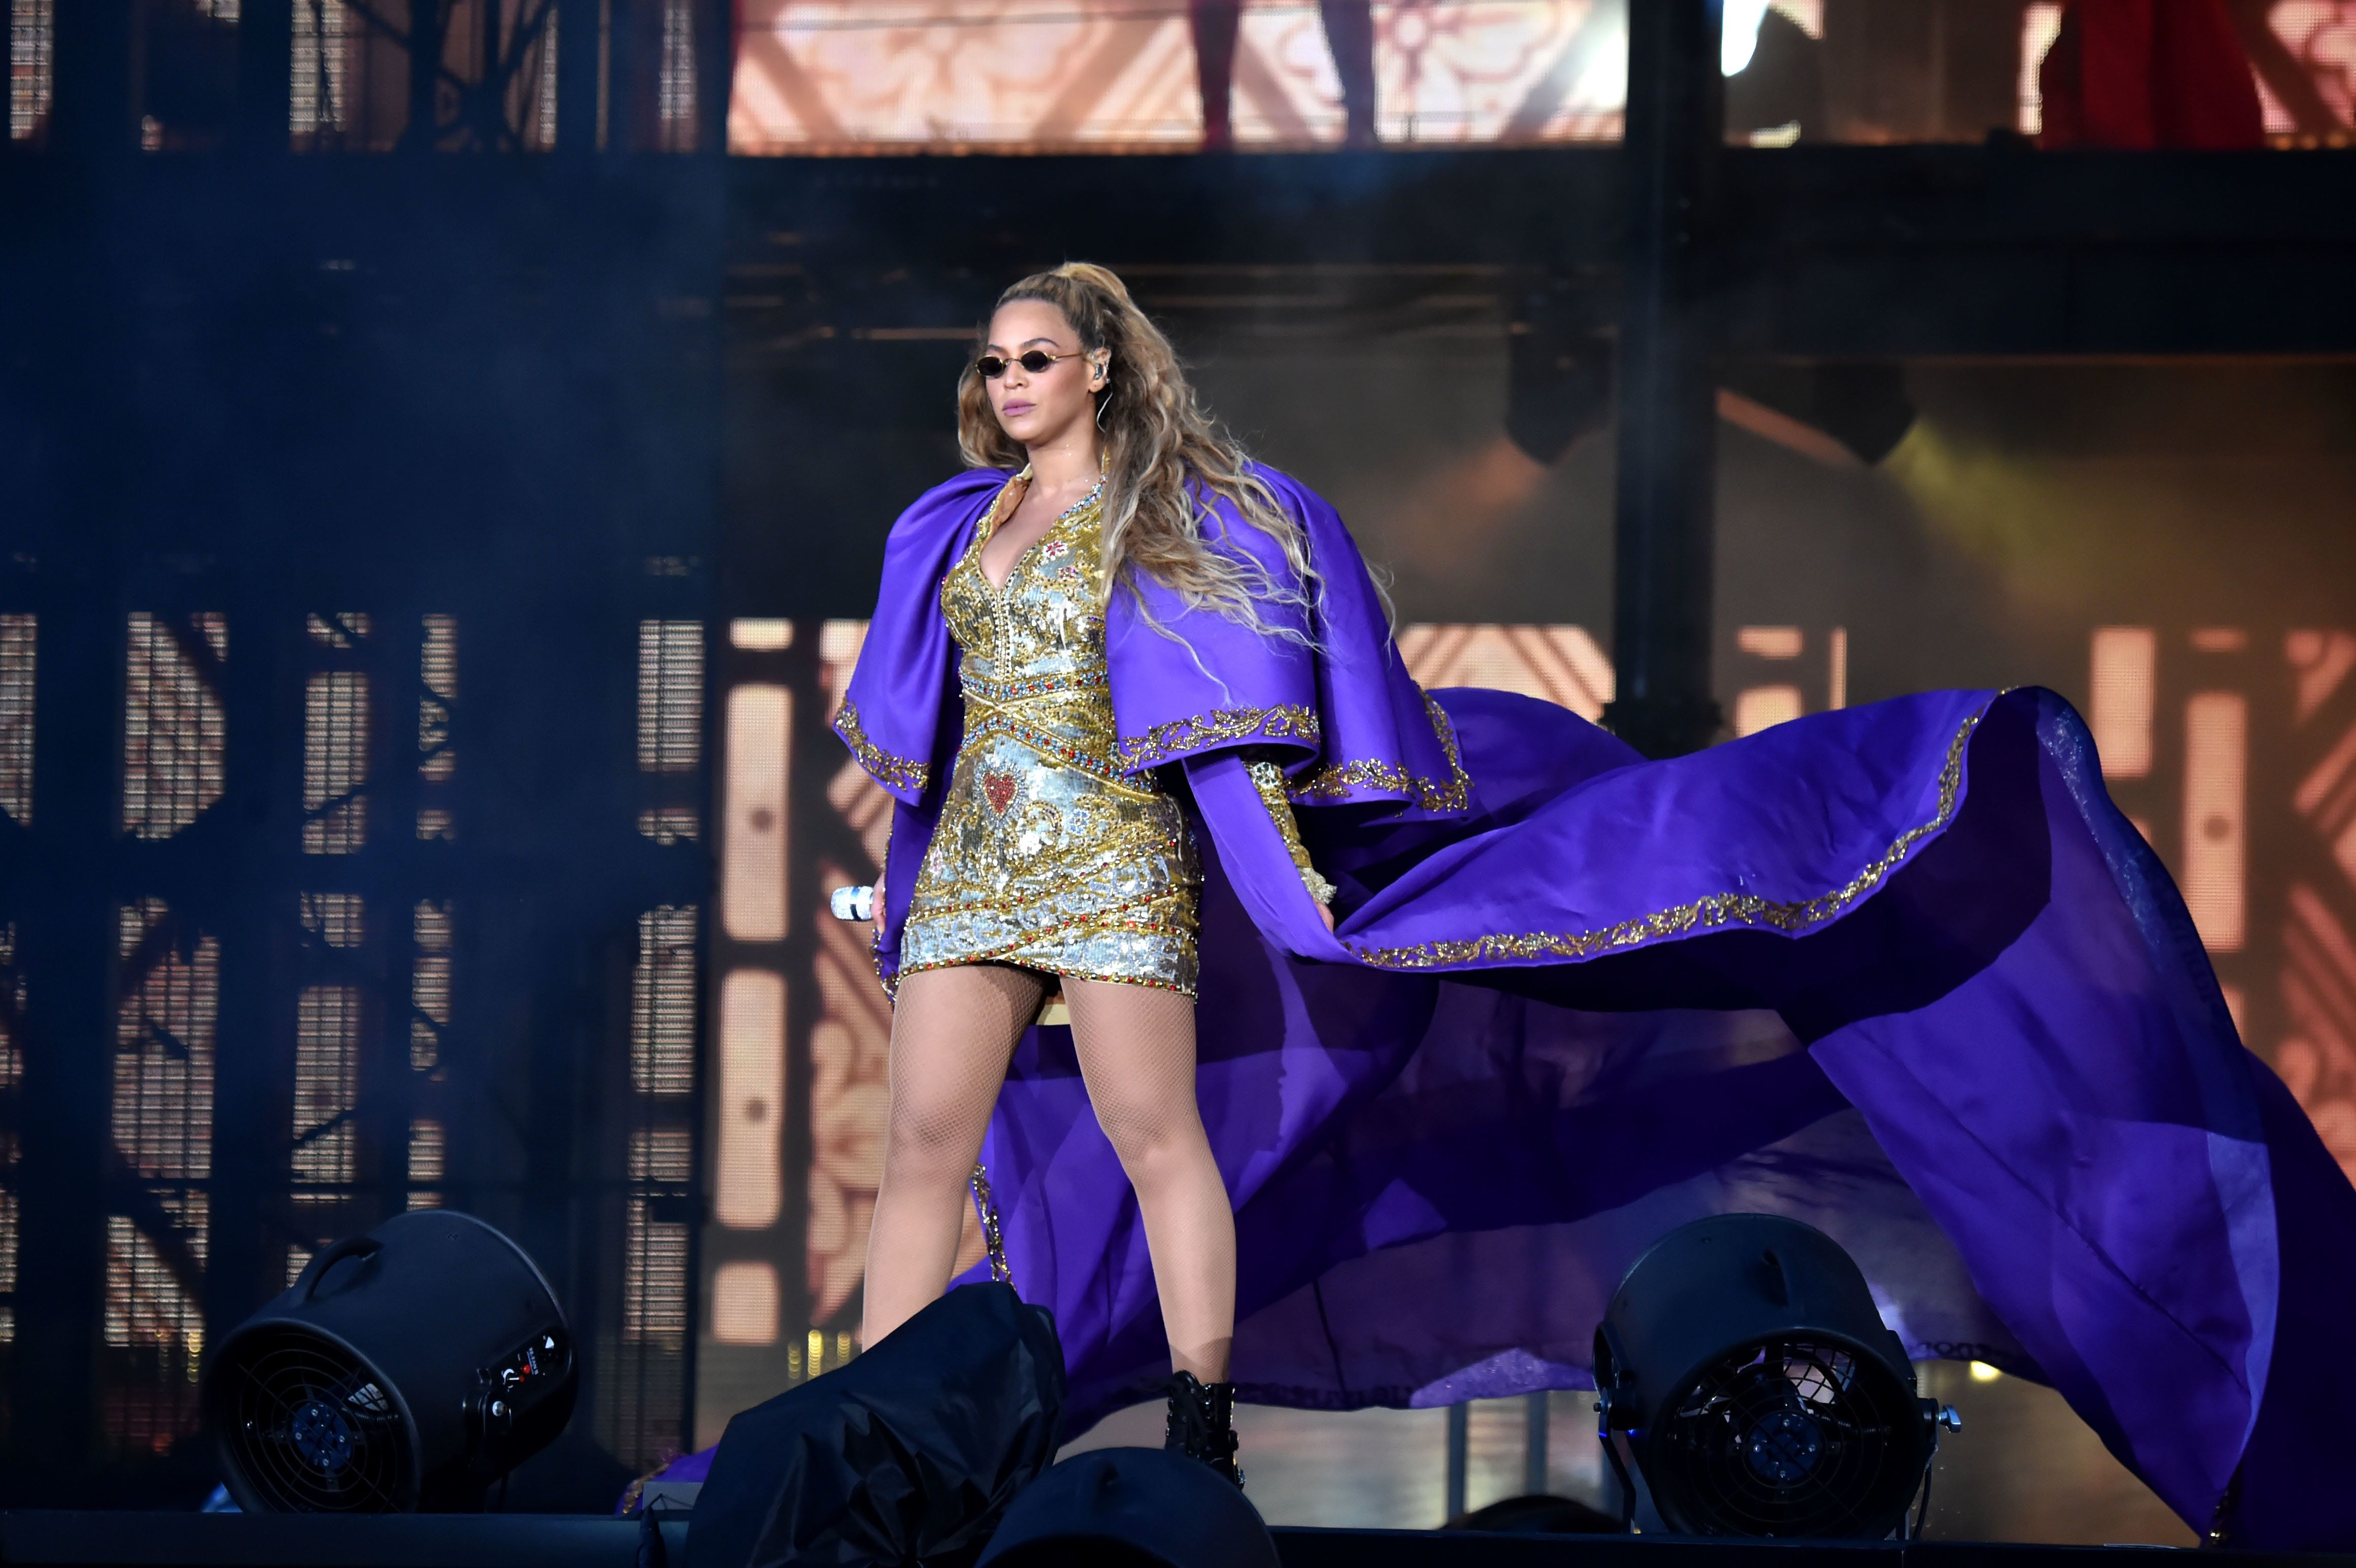 GLASGOW, SCOTLAND - JUNE 09:  Beyonce performs in purple on stage during the 'On the Run II' Tour with Jay-Z at Hampden Park on June 9, 2018 in Glasgow, Scotland.  (Photo by Kevin Mazur/Getty Images For Parkwood Entertainment)